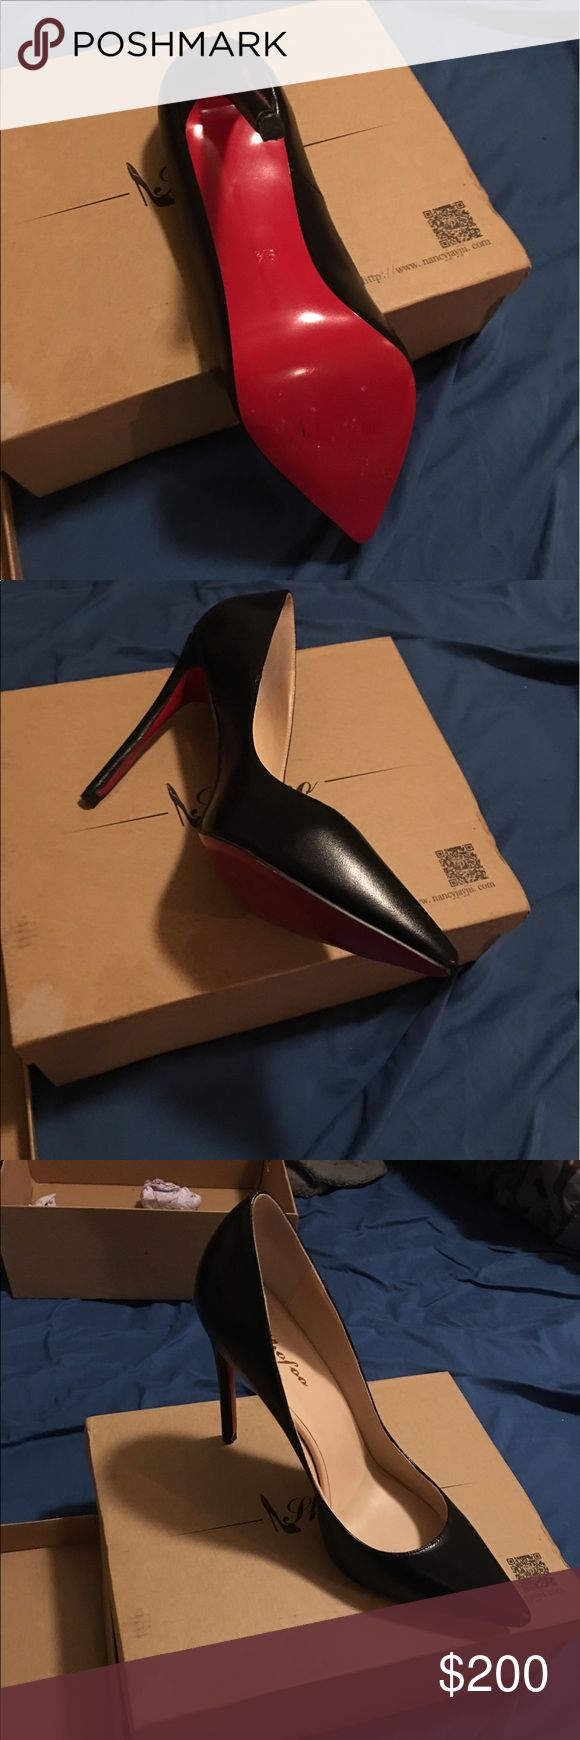 Thofoe red se ladies shoes Red sole ladies shoes. So cute and Katy has been worn once for a party. Looks new. Says size 8.5 but it's a real size 10 American size Thofoe Shoes Platforms